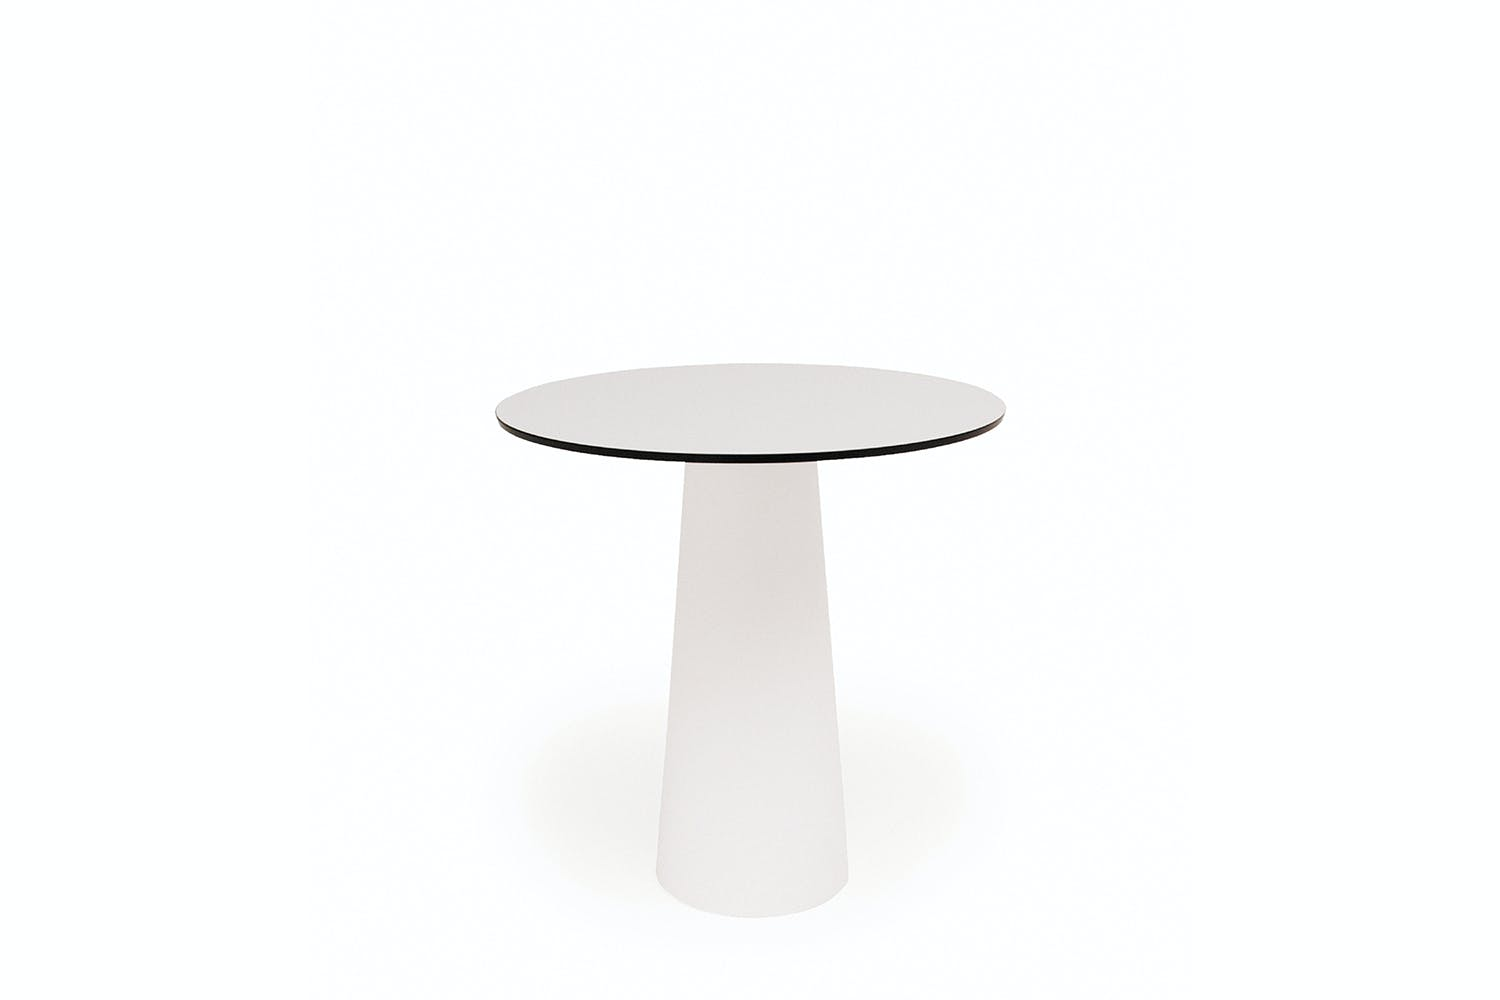 Container Tafel Moooi : Container table hpl round 90cm by marcel wanders for moooi space